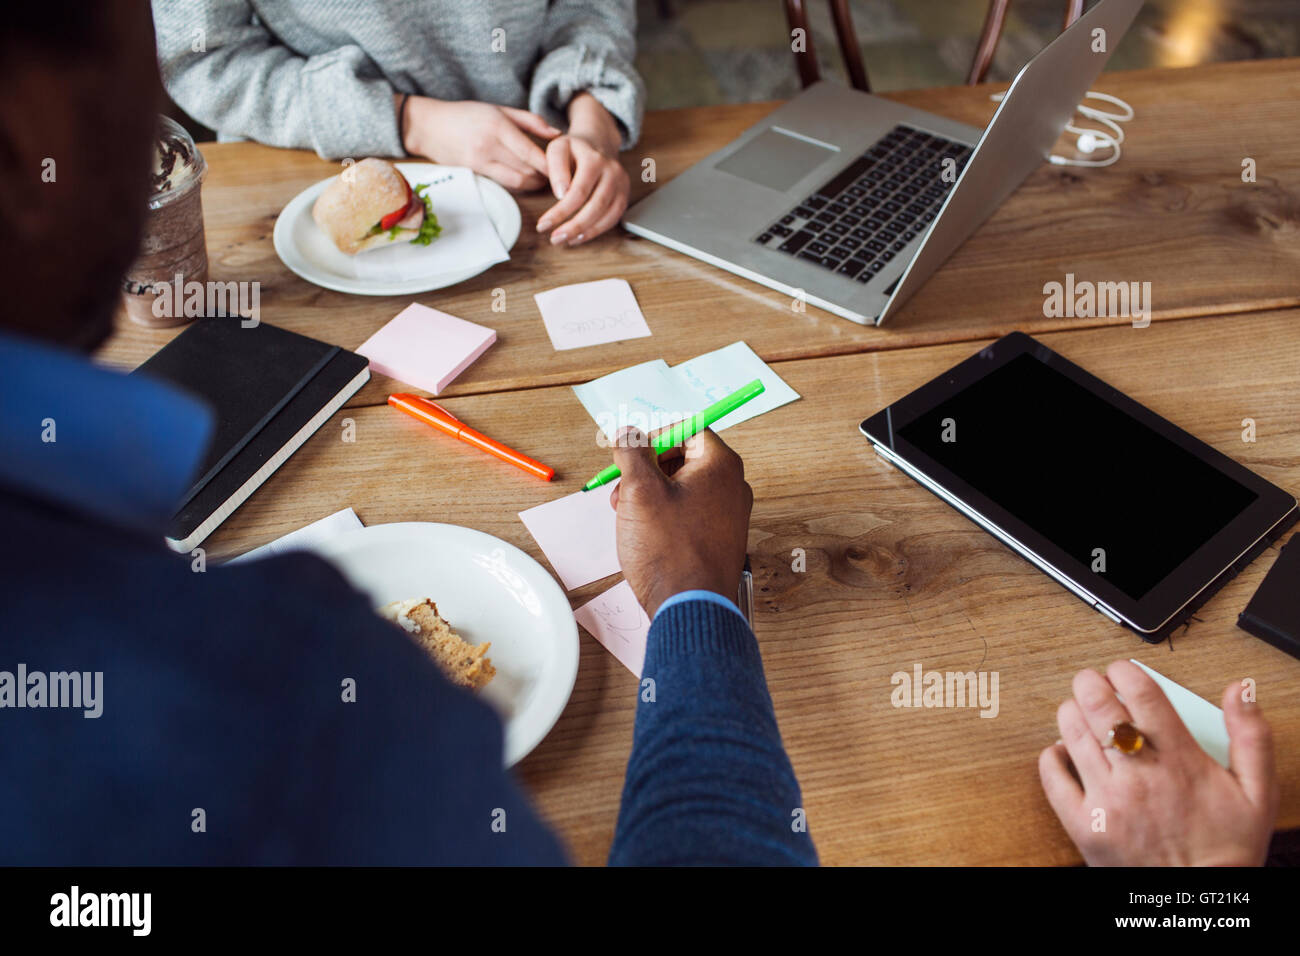 Cropped image of friends working while having sandwich at cafe - Stock Image